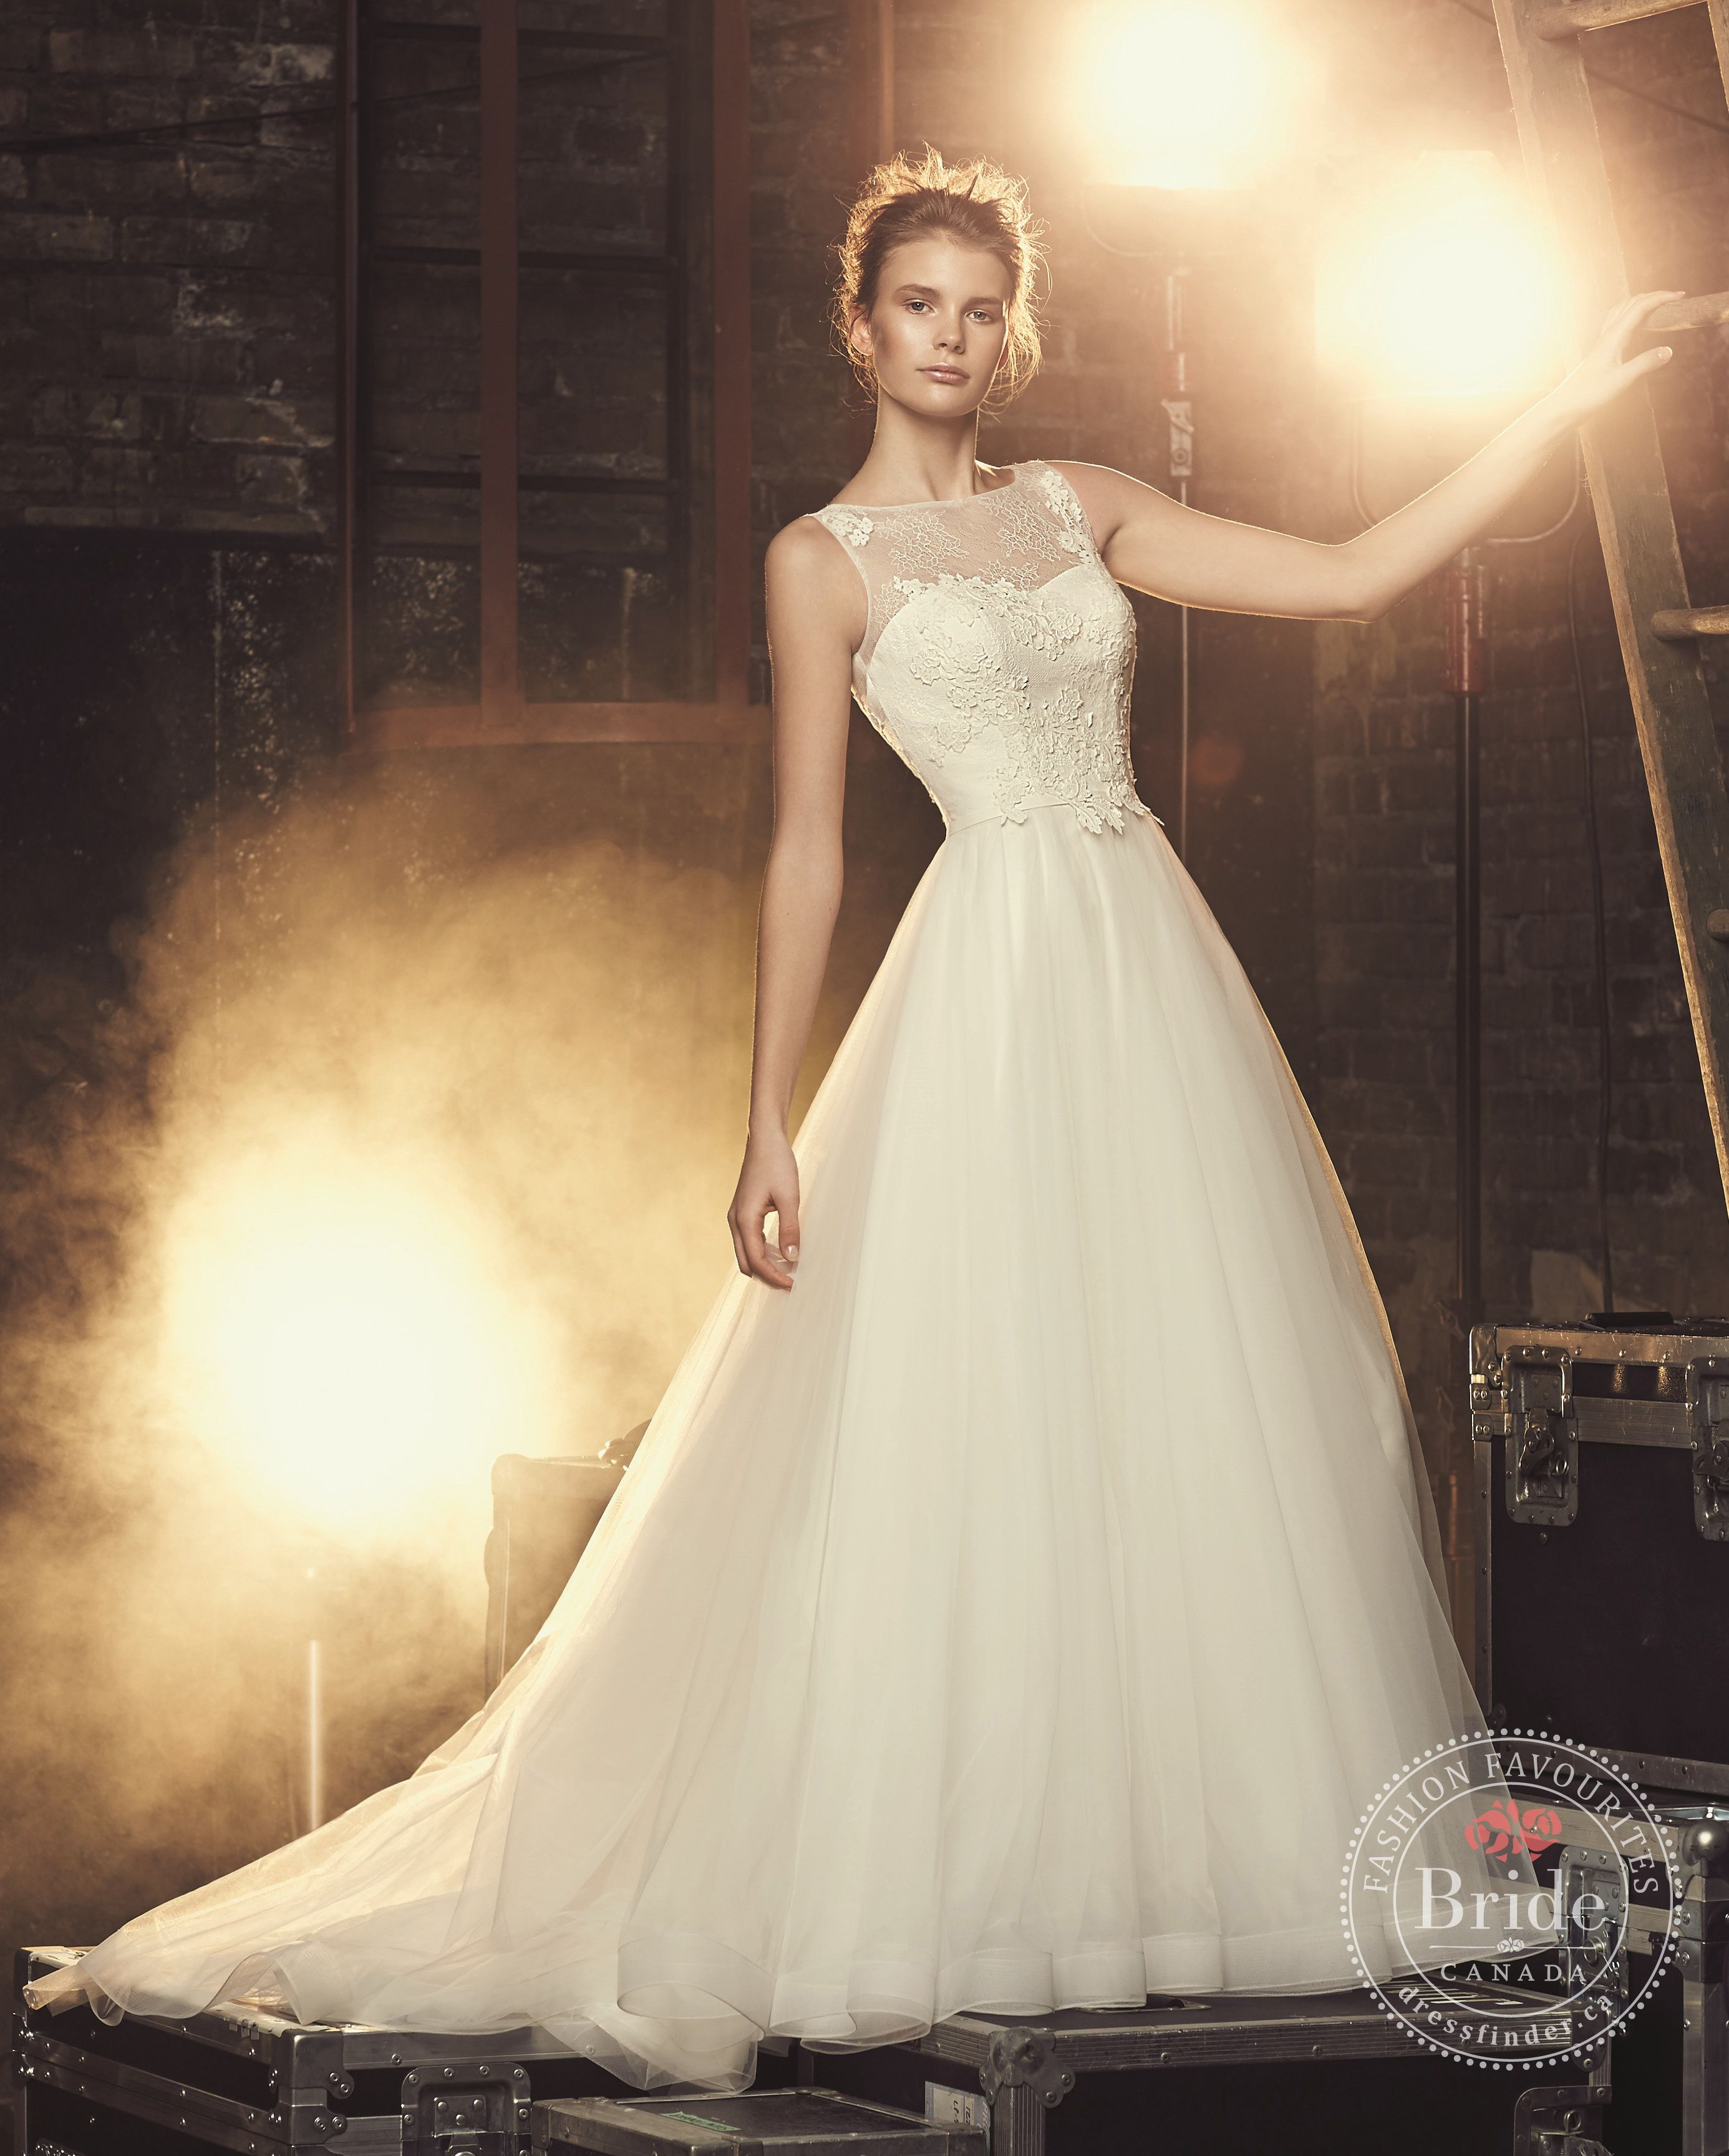 Heirlooms Bridal: #3 2085 By Mikaella Bridal Recommended By: Heirlooms